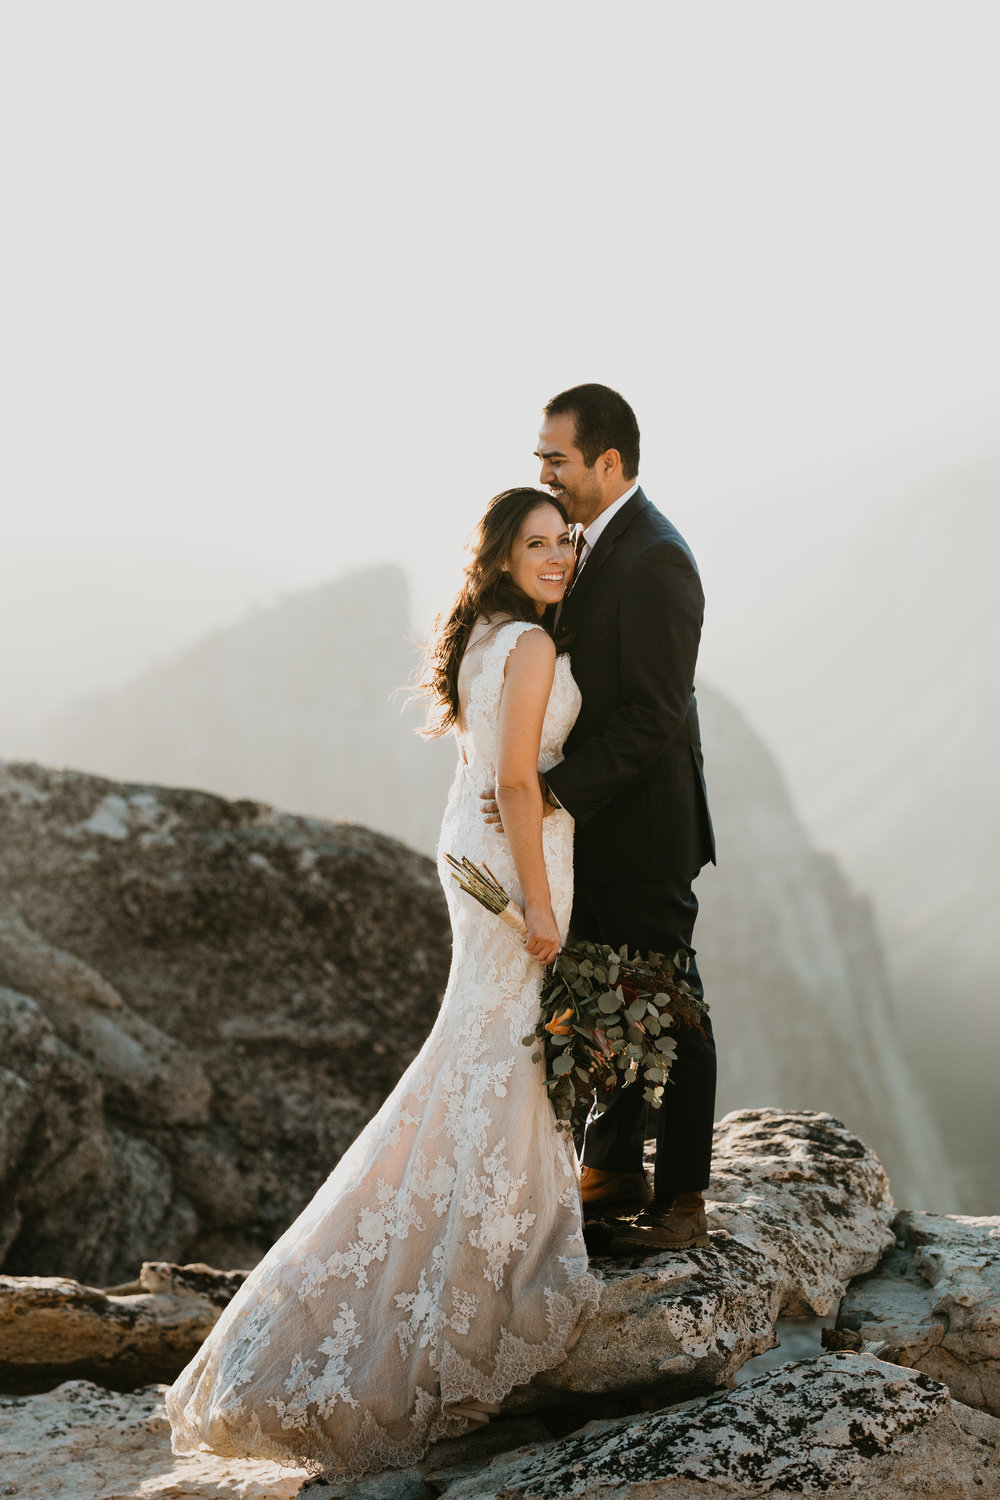 nicole-daacke-photography-yosemite-national-park-elopement-at-taft-point-tunnel-view-yosemite-intimate-wedding-fall-sunset-adventure-elopement-photographer-47.jpg